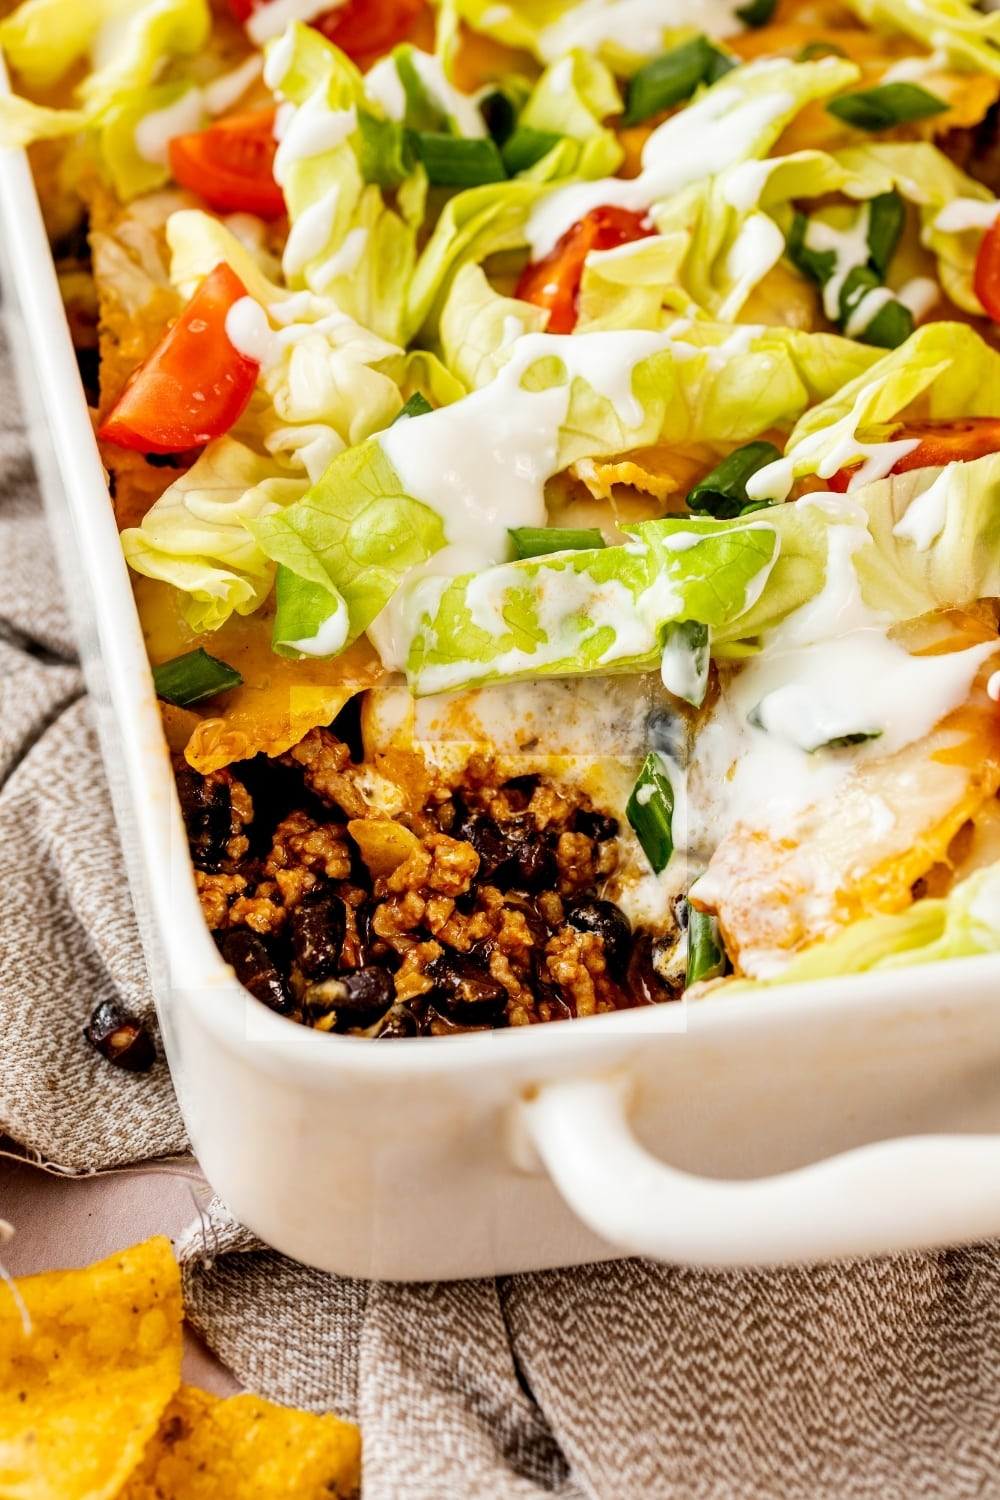 Part of a white casserole dish with walking taco casserole in it. The front corner of the casserole dish is showing the inside of the walking taco casserole.